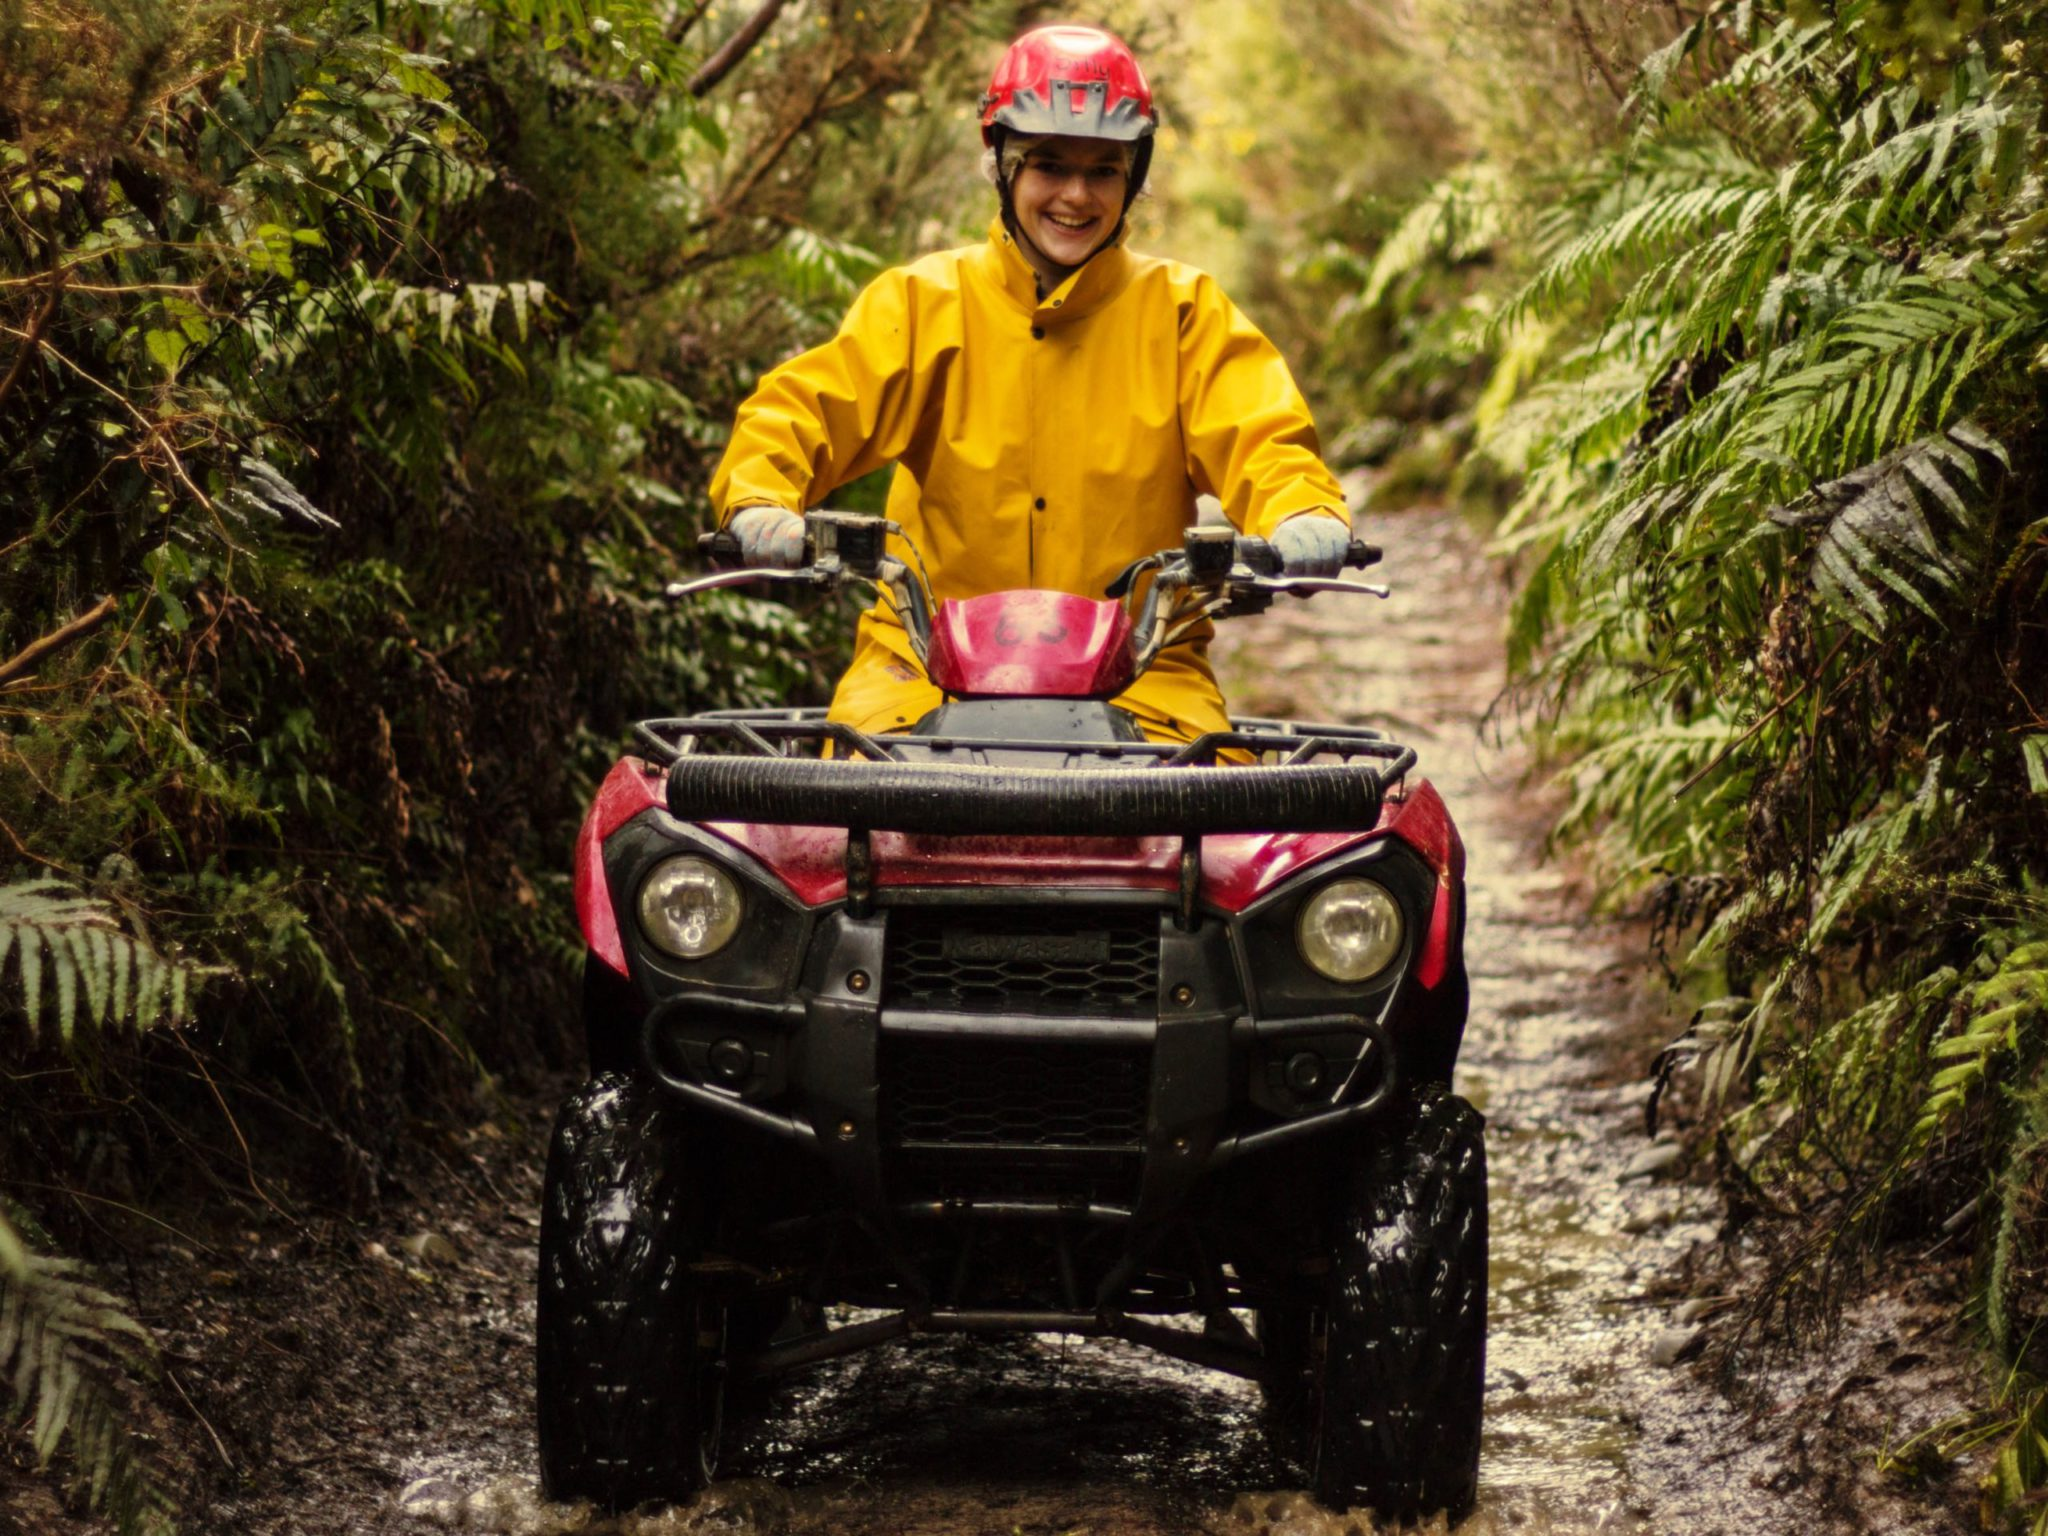 1 hour New Zealand quad biking experience in Enchanted Forest